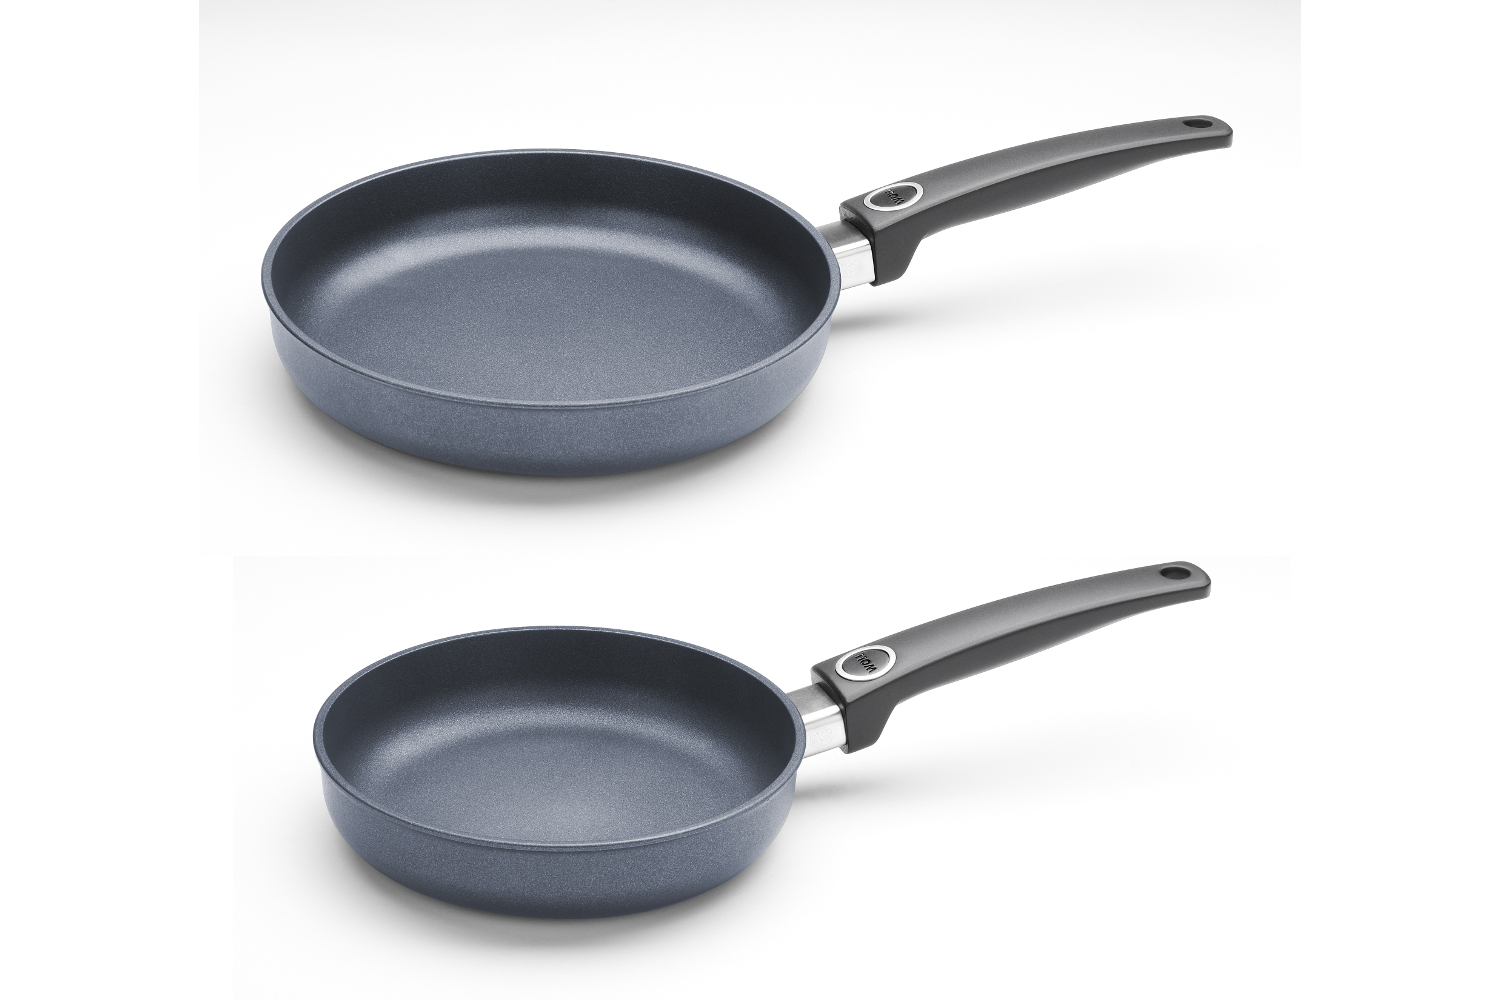 Woll Diamond Lite Nonstick 2 Piece Fry Pan Set